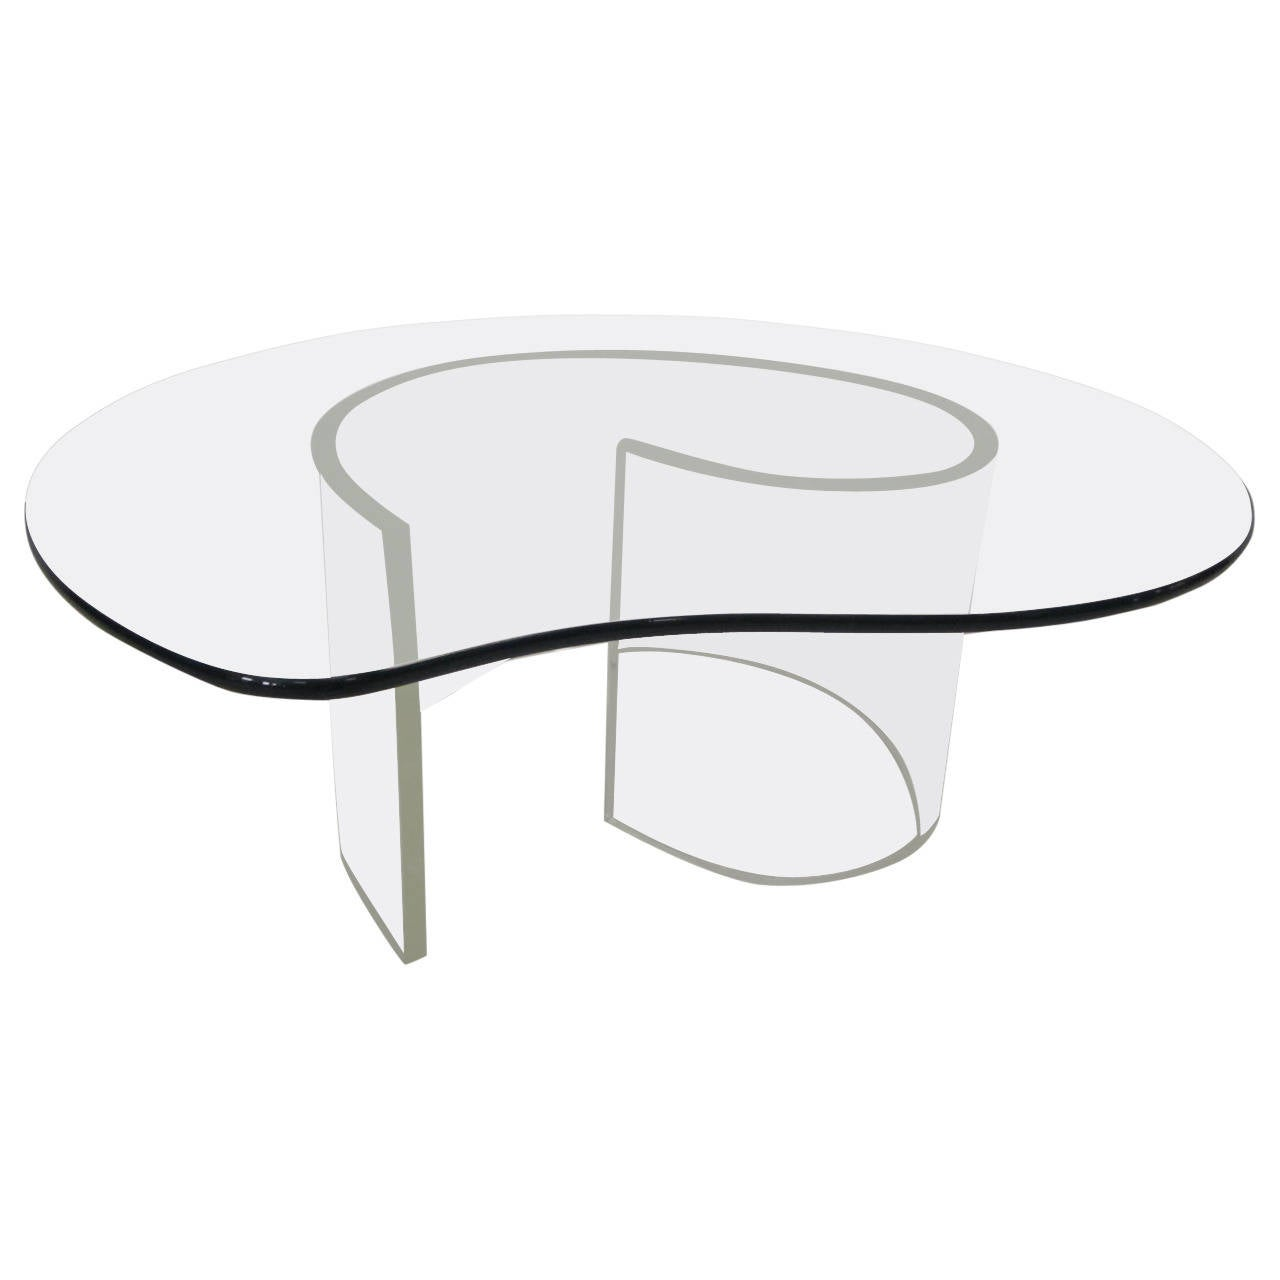 Hollywood Regency Kagan Style Lucite Snail Coffee Table, Mid Century Modern  For Sale